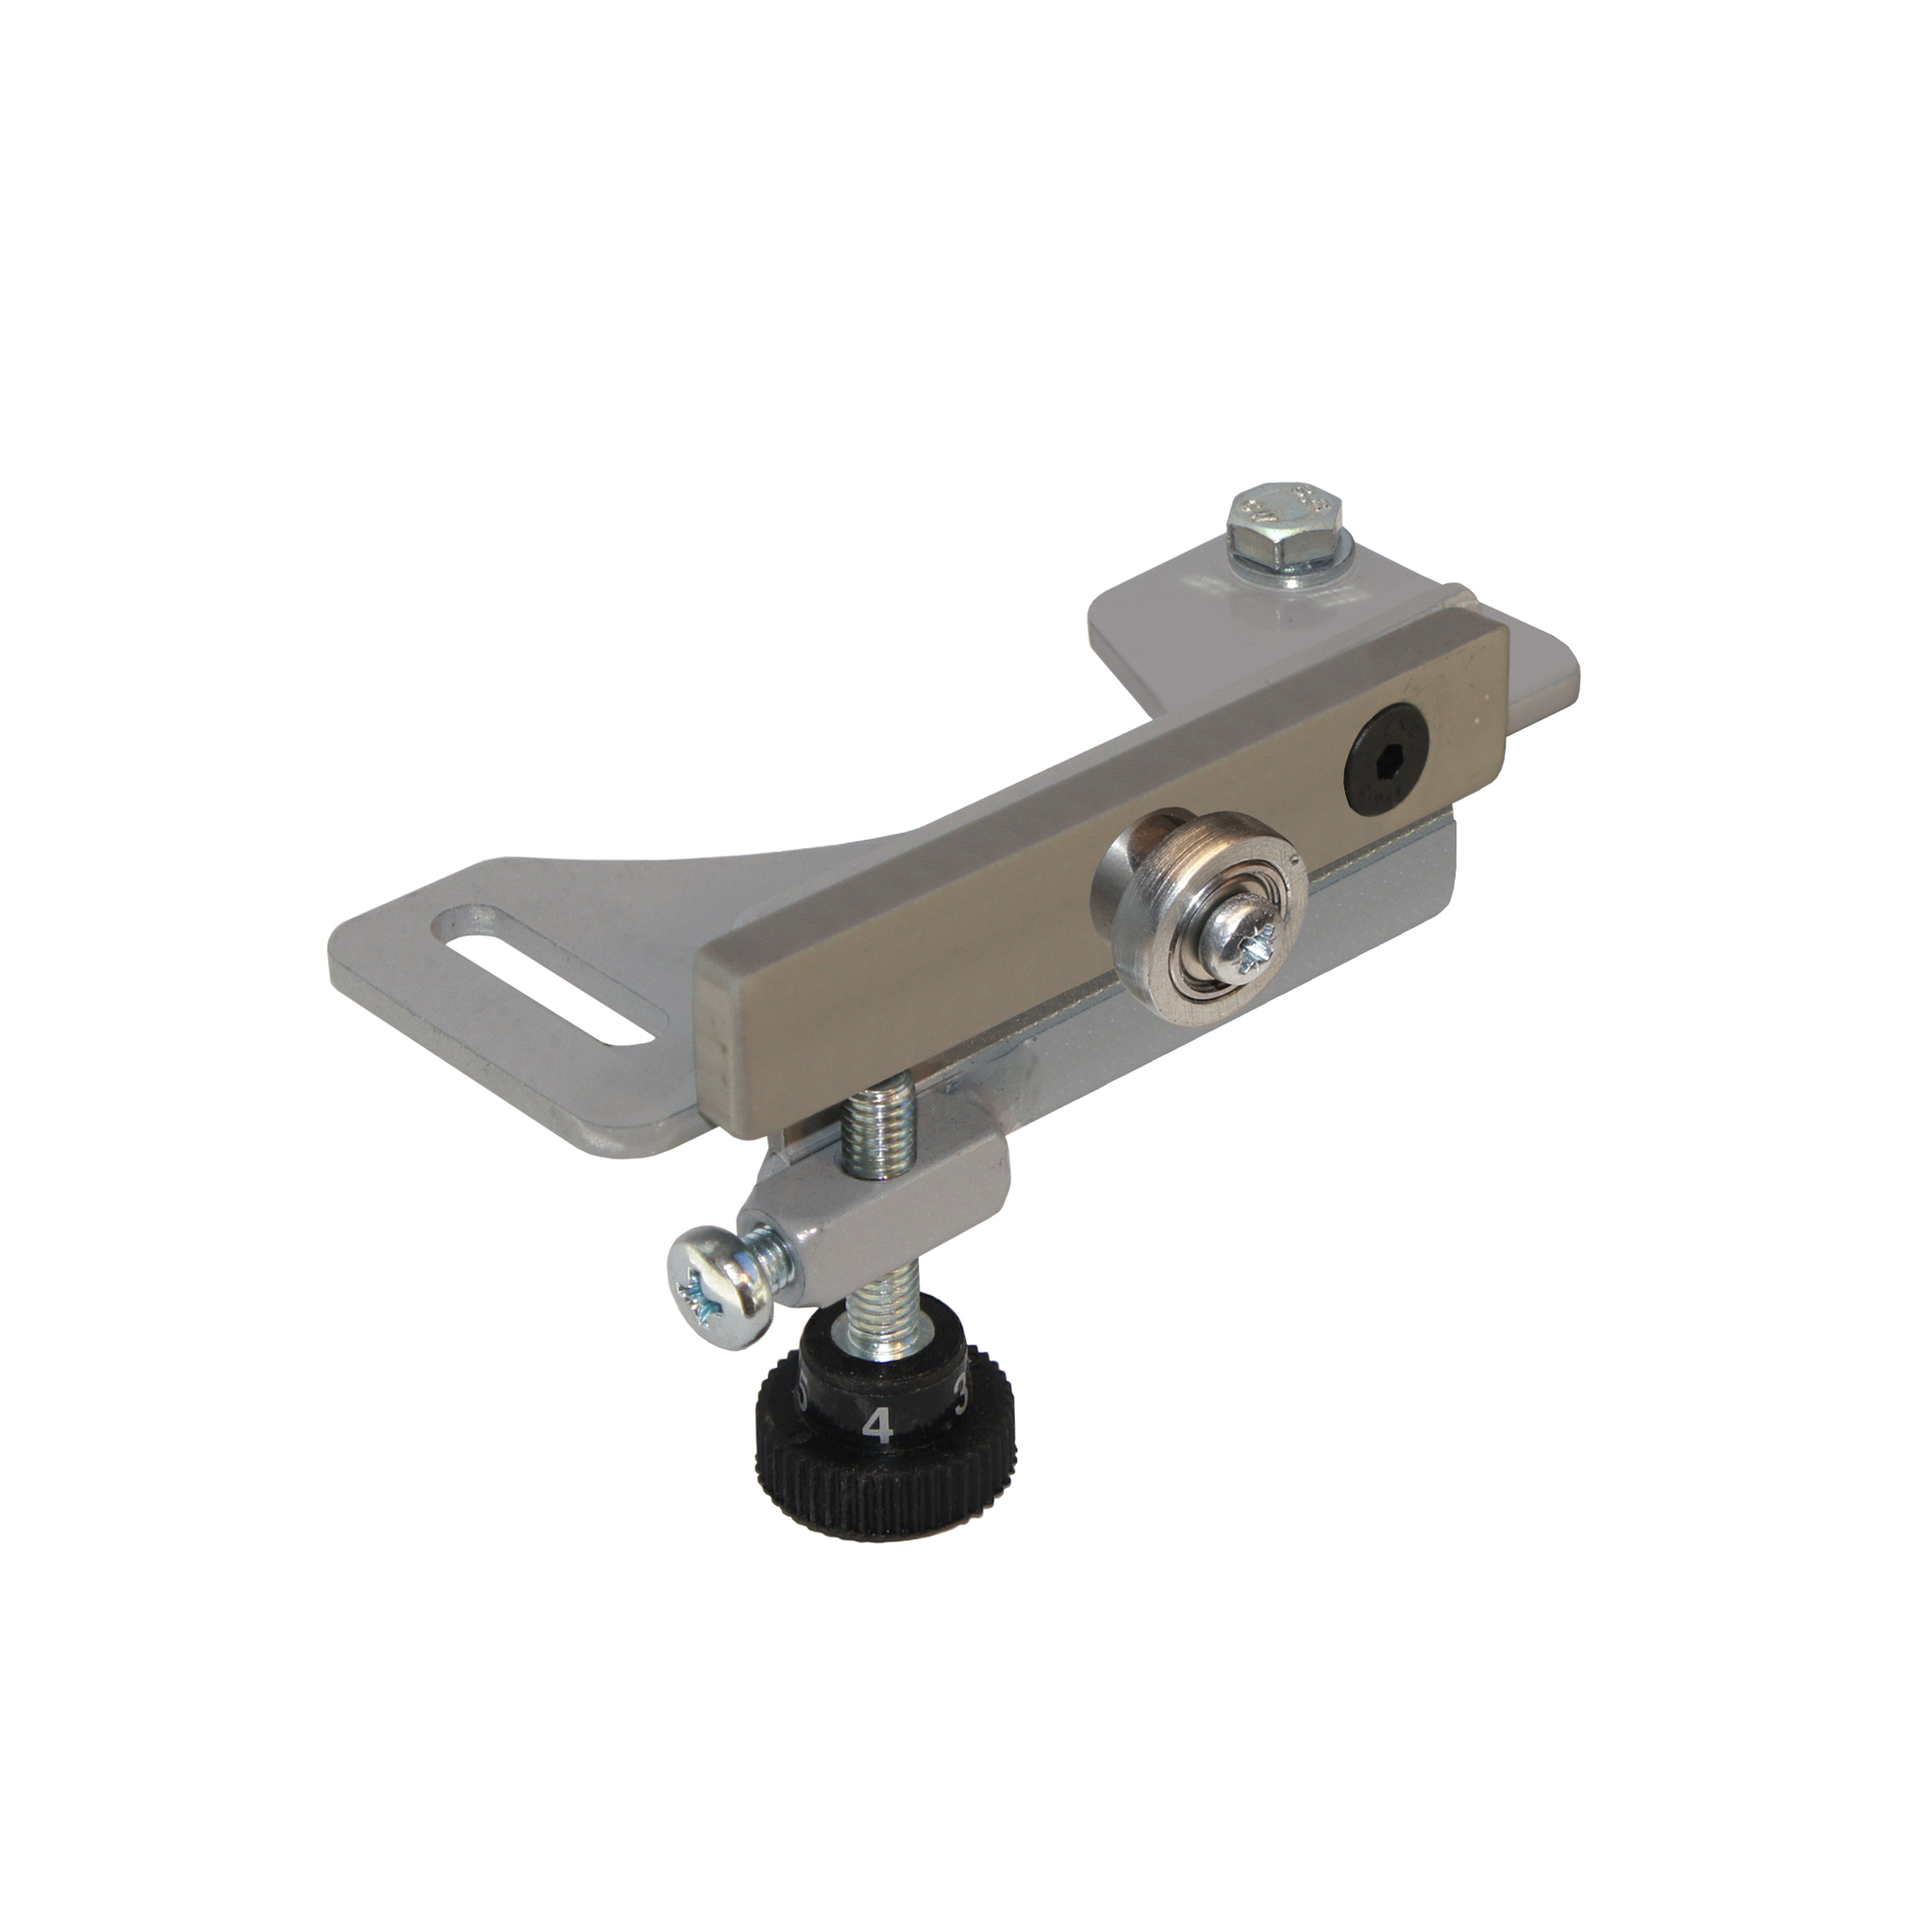 Blade support device for H-10G